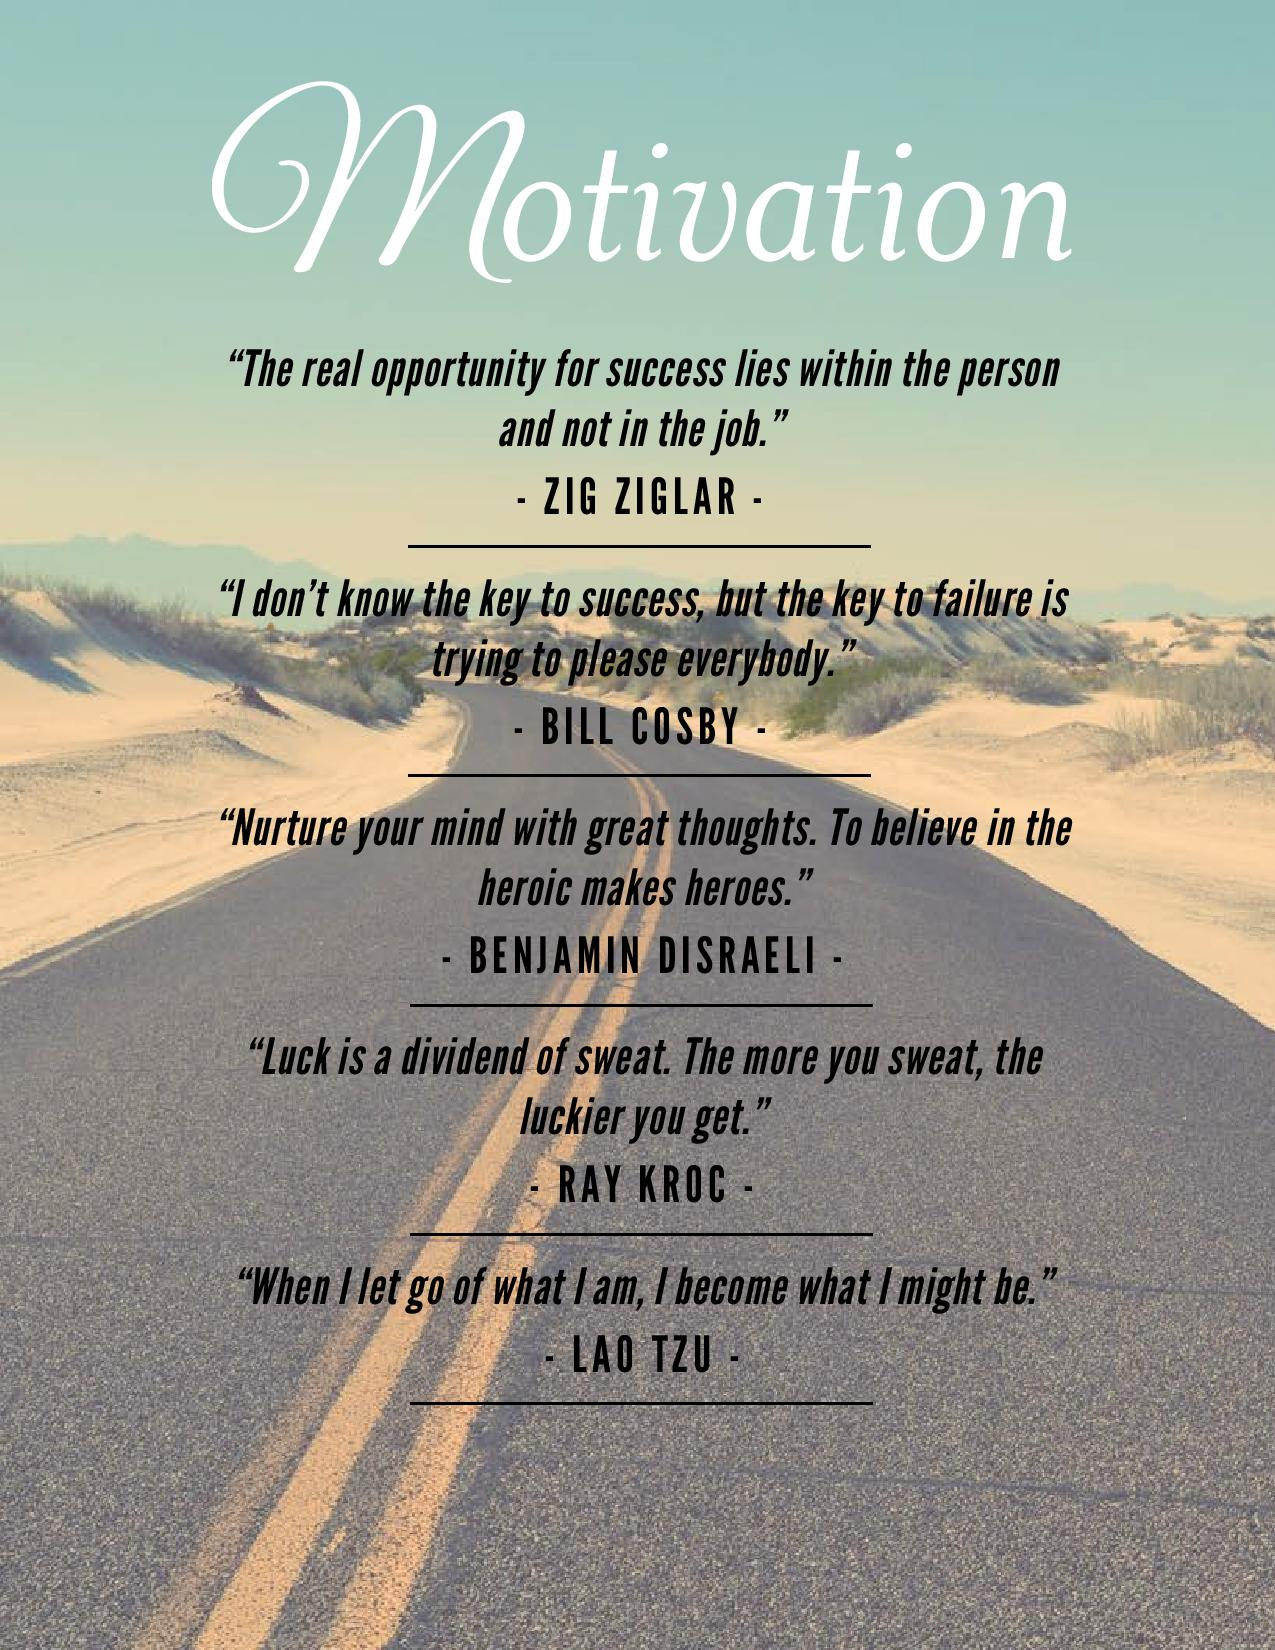 Motivational And Inspirational Quotes Sayings Quotesgram. Mom Quotes For First Day Of School. Quotes About Change And Family. Encouragement Quotes In Times Of Trials. Book Quotes Children's Literature. Alice In Wonderland Quotes Not Myself. Harry Potter Quotes Phoenix. Country Quotes To Say To Your Girlfriend. Good Quotes To Analyze